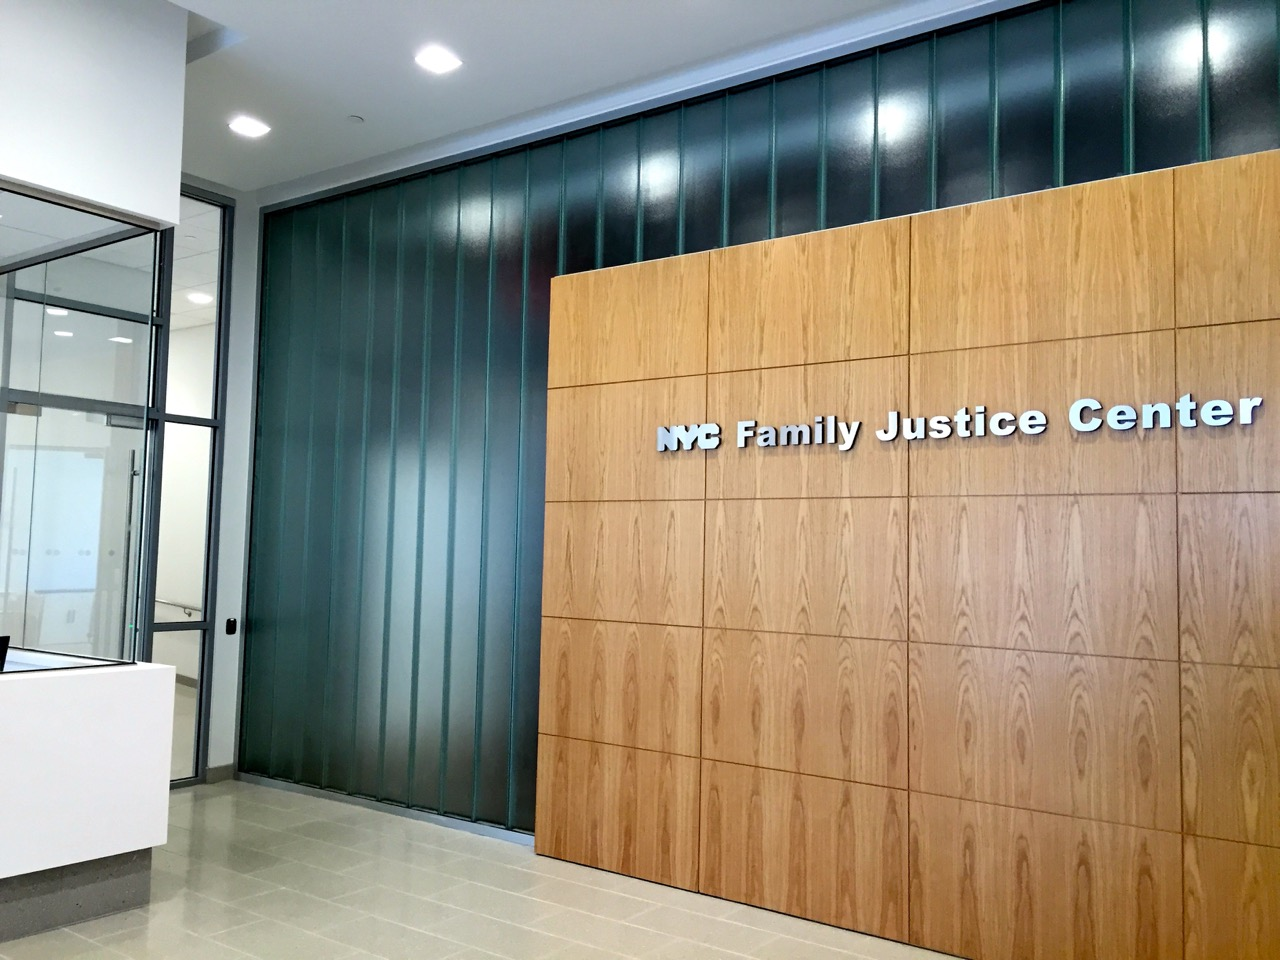 Family Justice Center  Staten Island, Ny  Impact. Wristbands Silicone Custom Cheap. Nevada State Nursing Board Depuy Hips Recall. Ip Based Video Conferencing Lexis Login Page. Best Womens Running Tights Free Tax Debt Help. Online Teacher Training Courses. Senior Citizen Life Insurance. Medtronic Class Action Lawsuit. Total Merchant Services Reviews